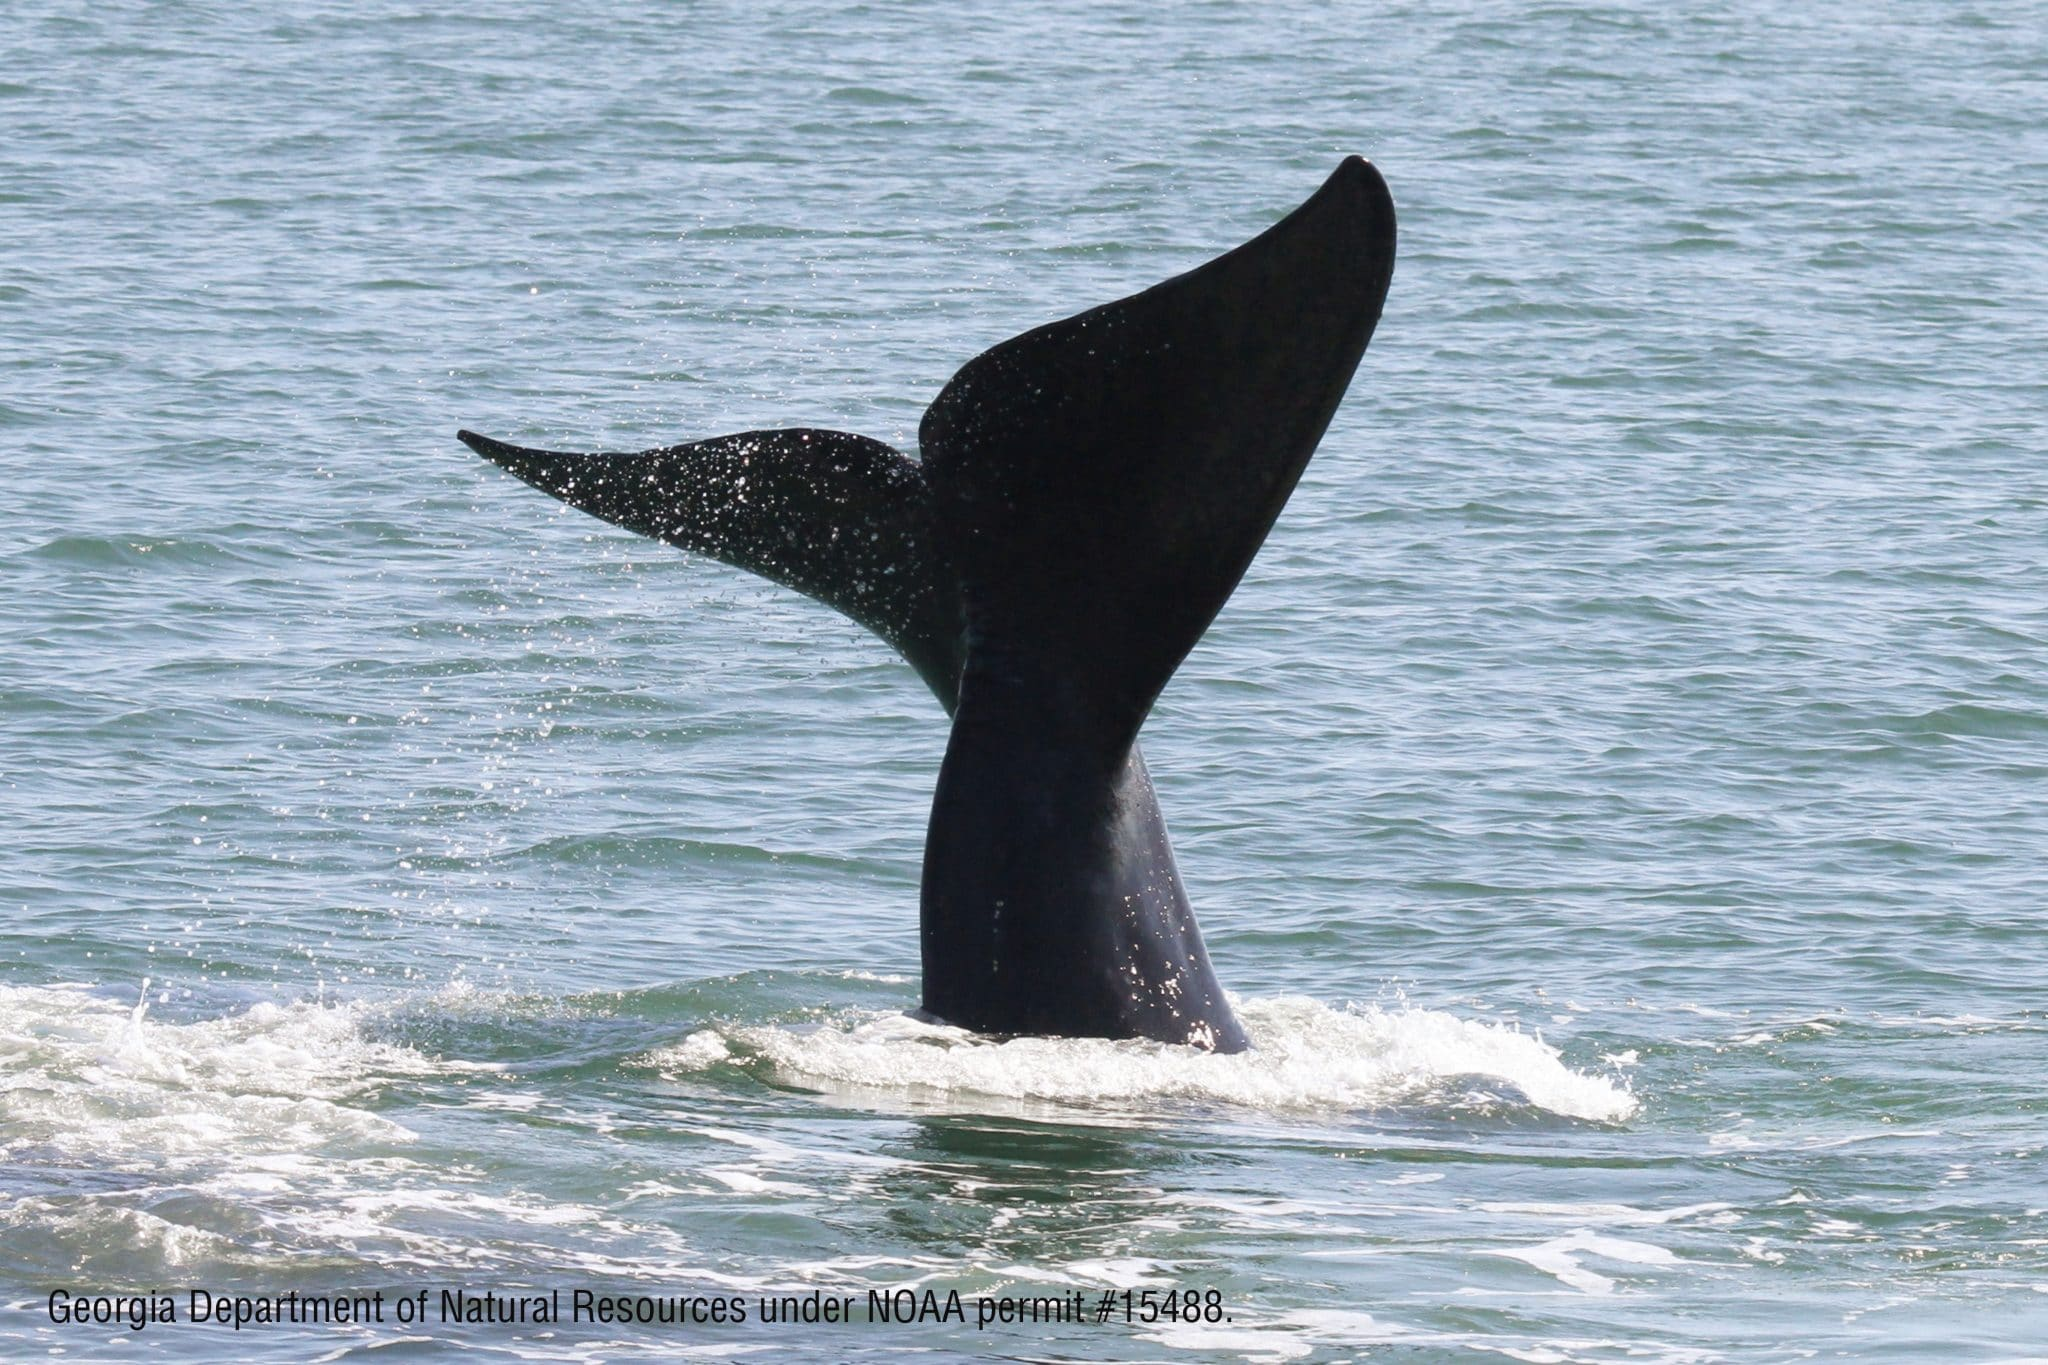 Canada announces 2019 plans to protect North Atlantic right whales